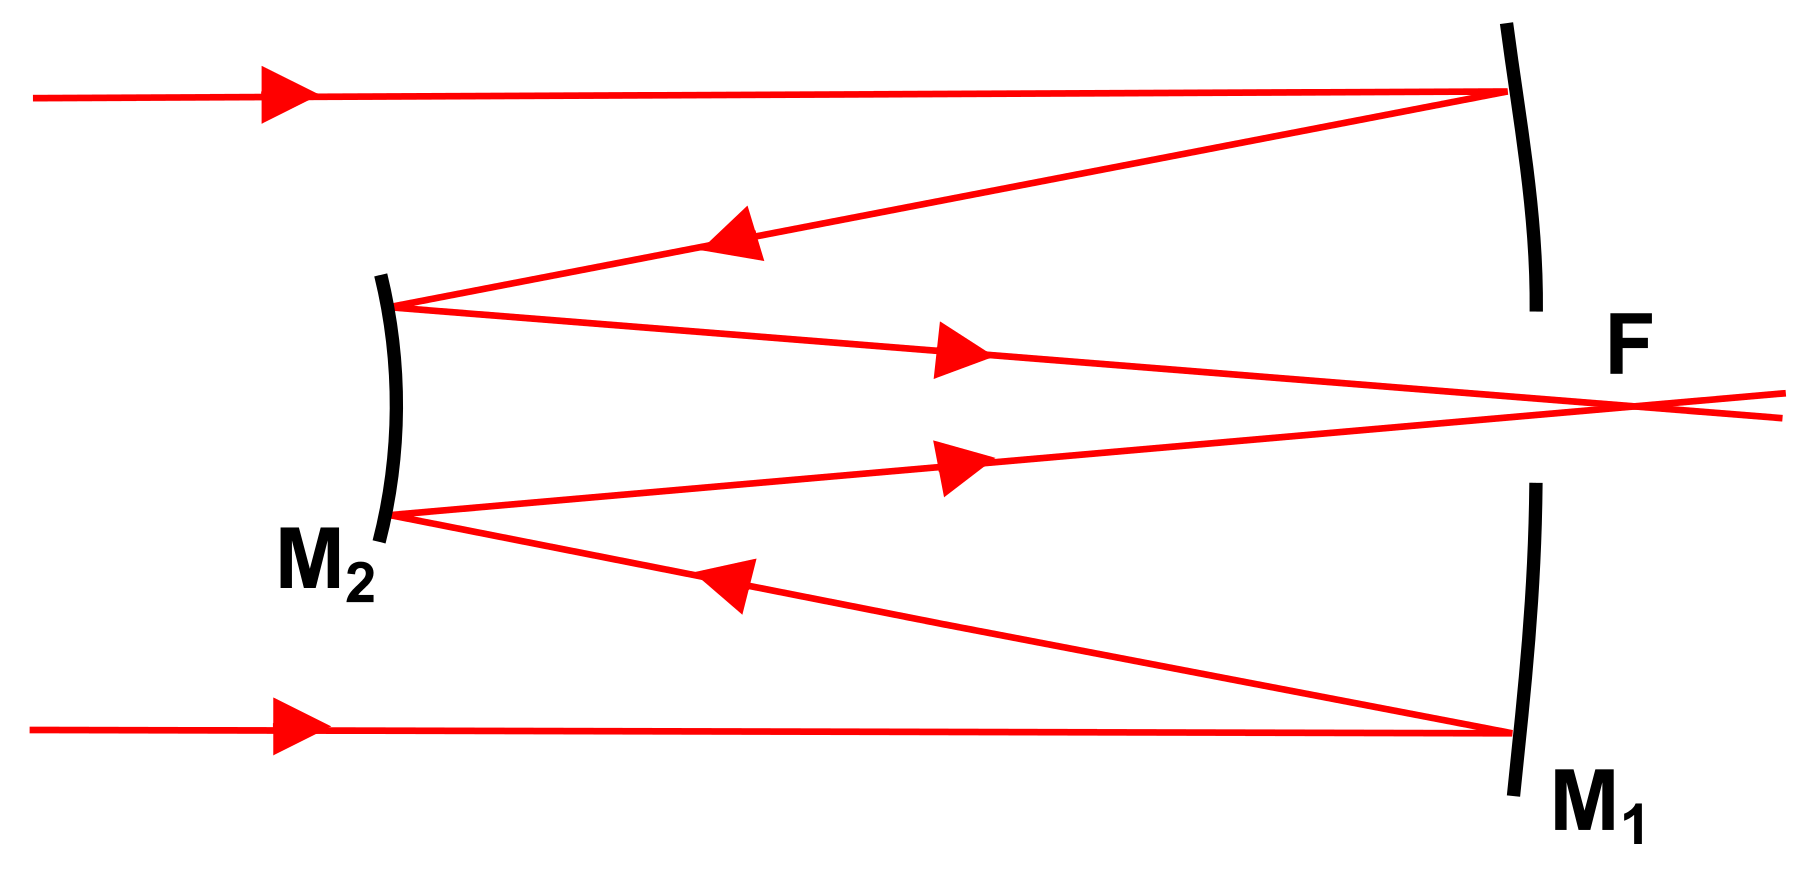 Diagram of a Cassegrain telescope which uses two reflecting mirrors. Credit: http://en.wikipedia.org/wiki/File:Diagram_Reflector_RitcheyChretien.svg